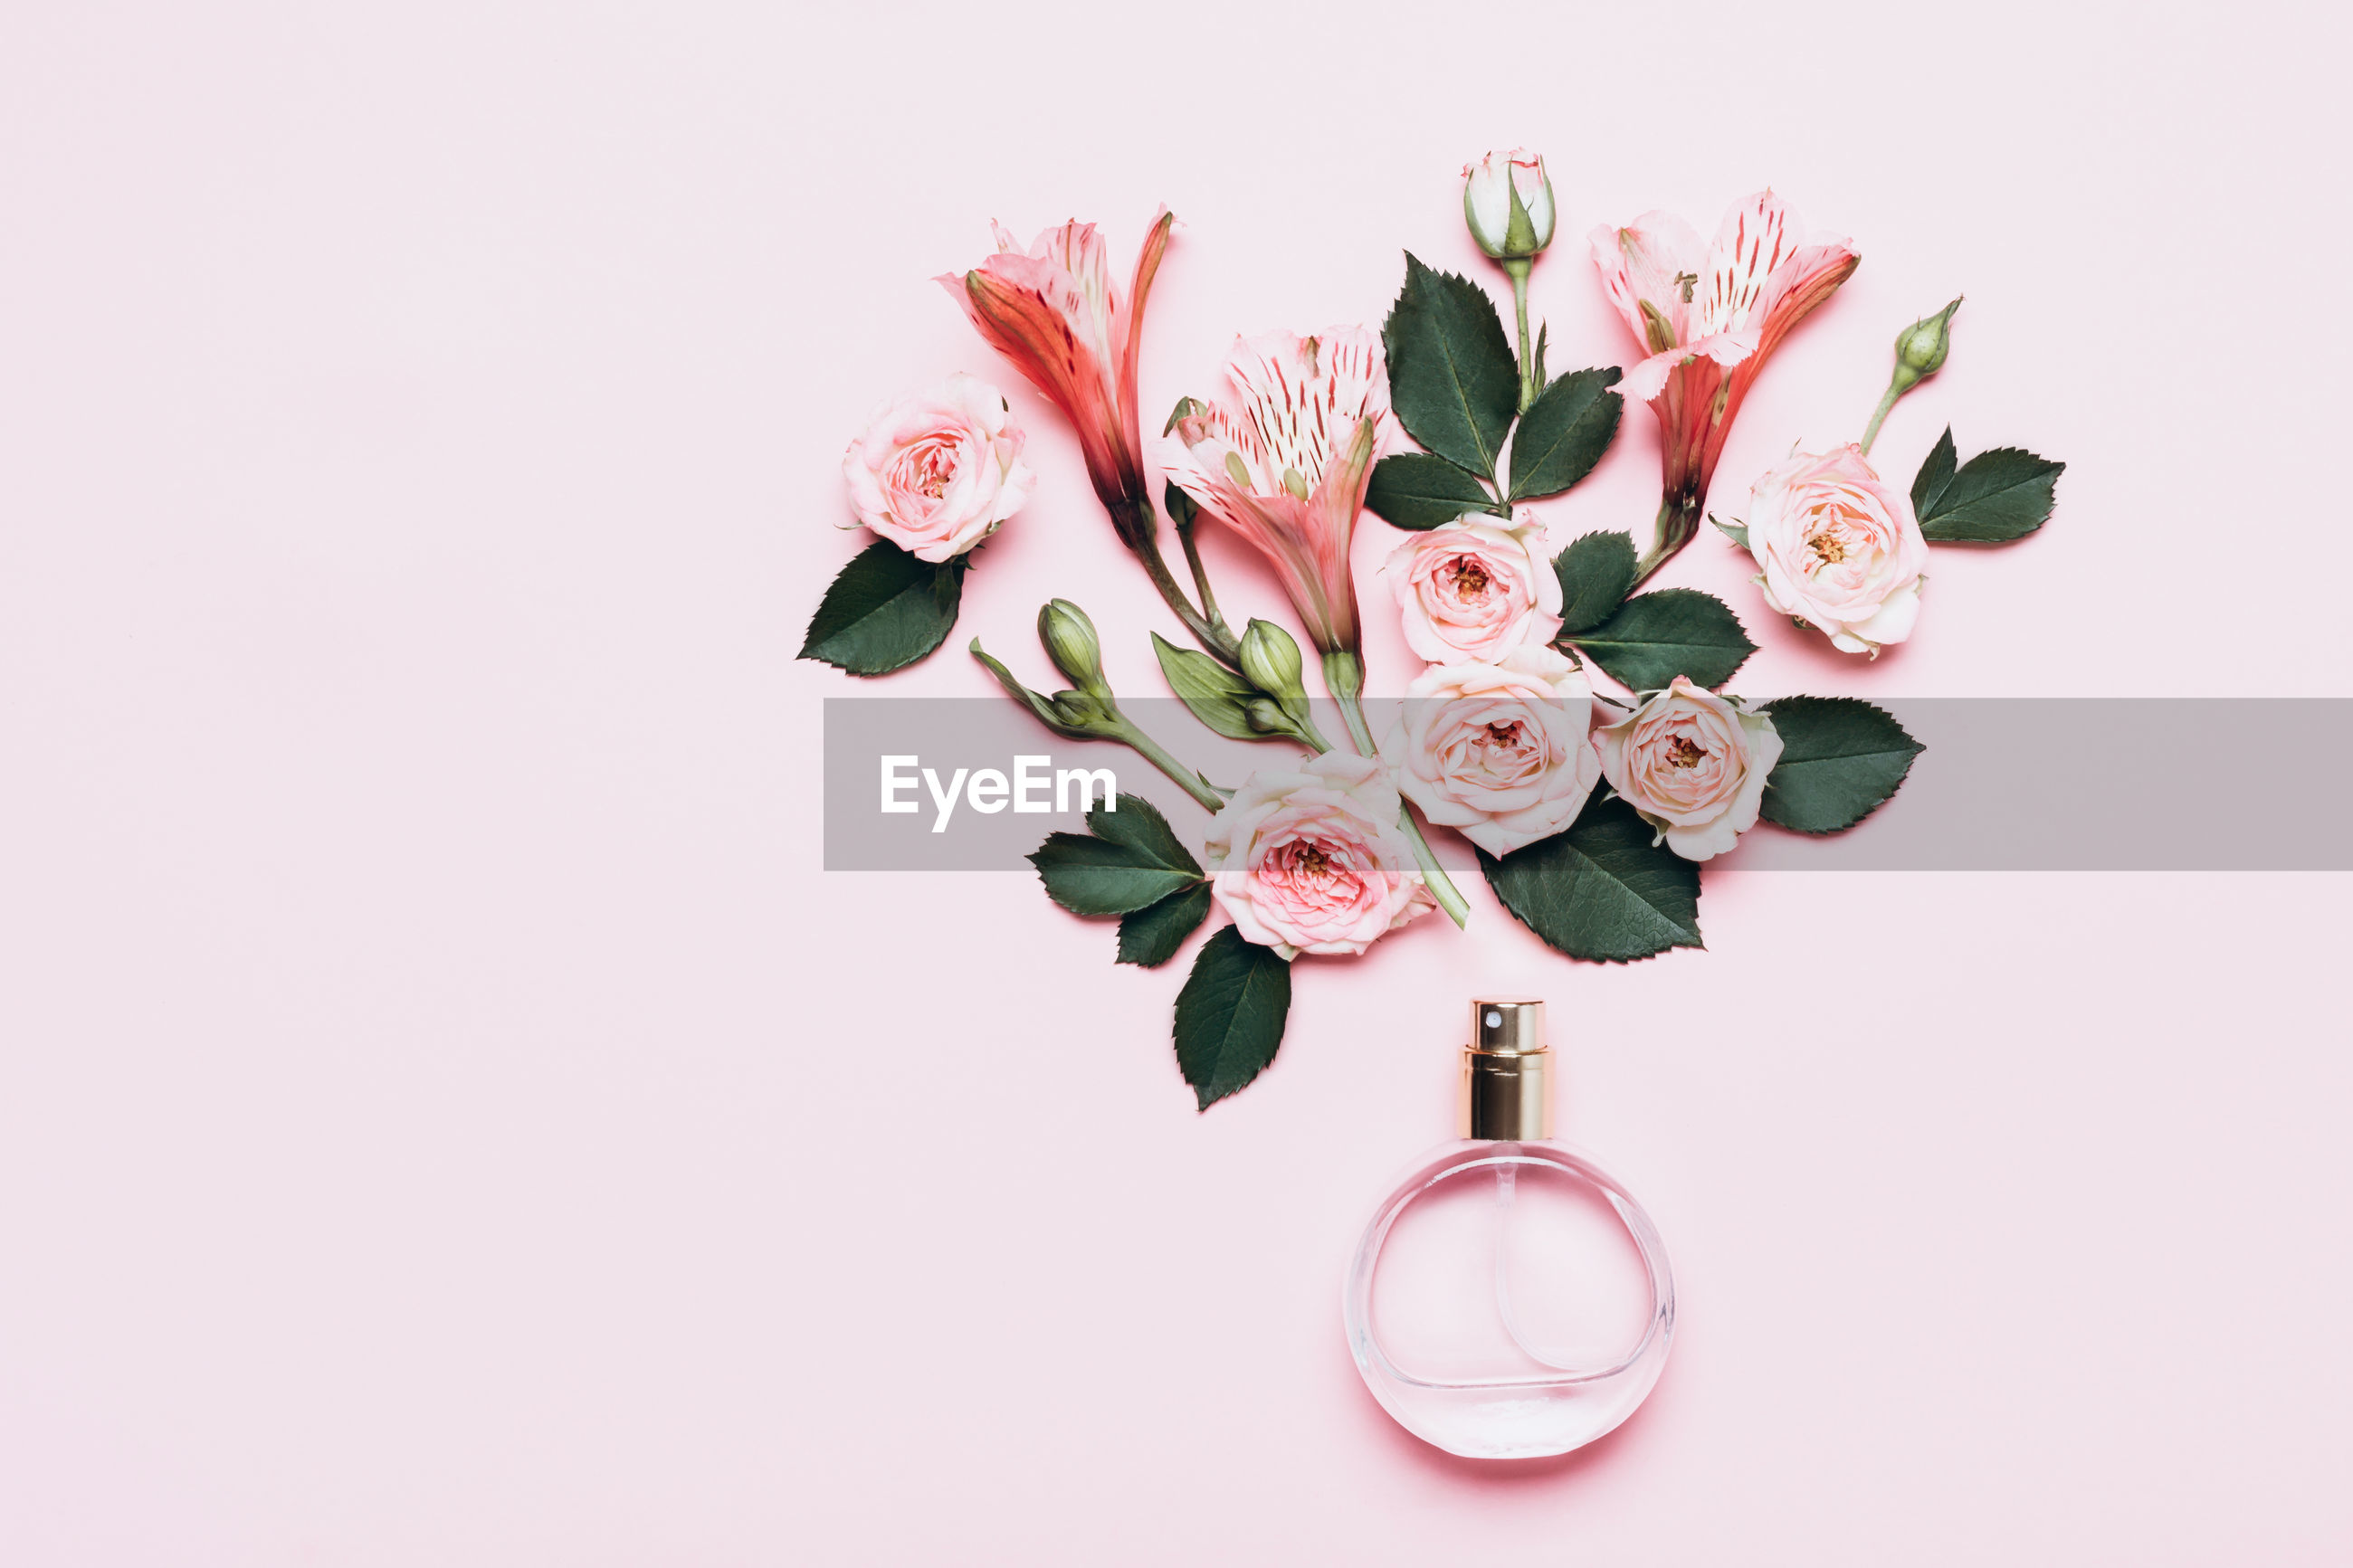 CLOSE-UP OF PINK FLOWERS IN VASE AGAINST WHITE BACKGROUND